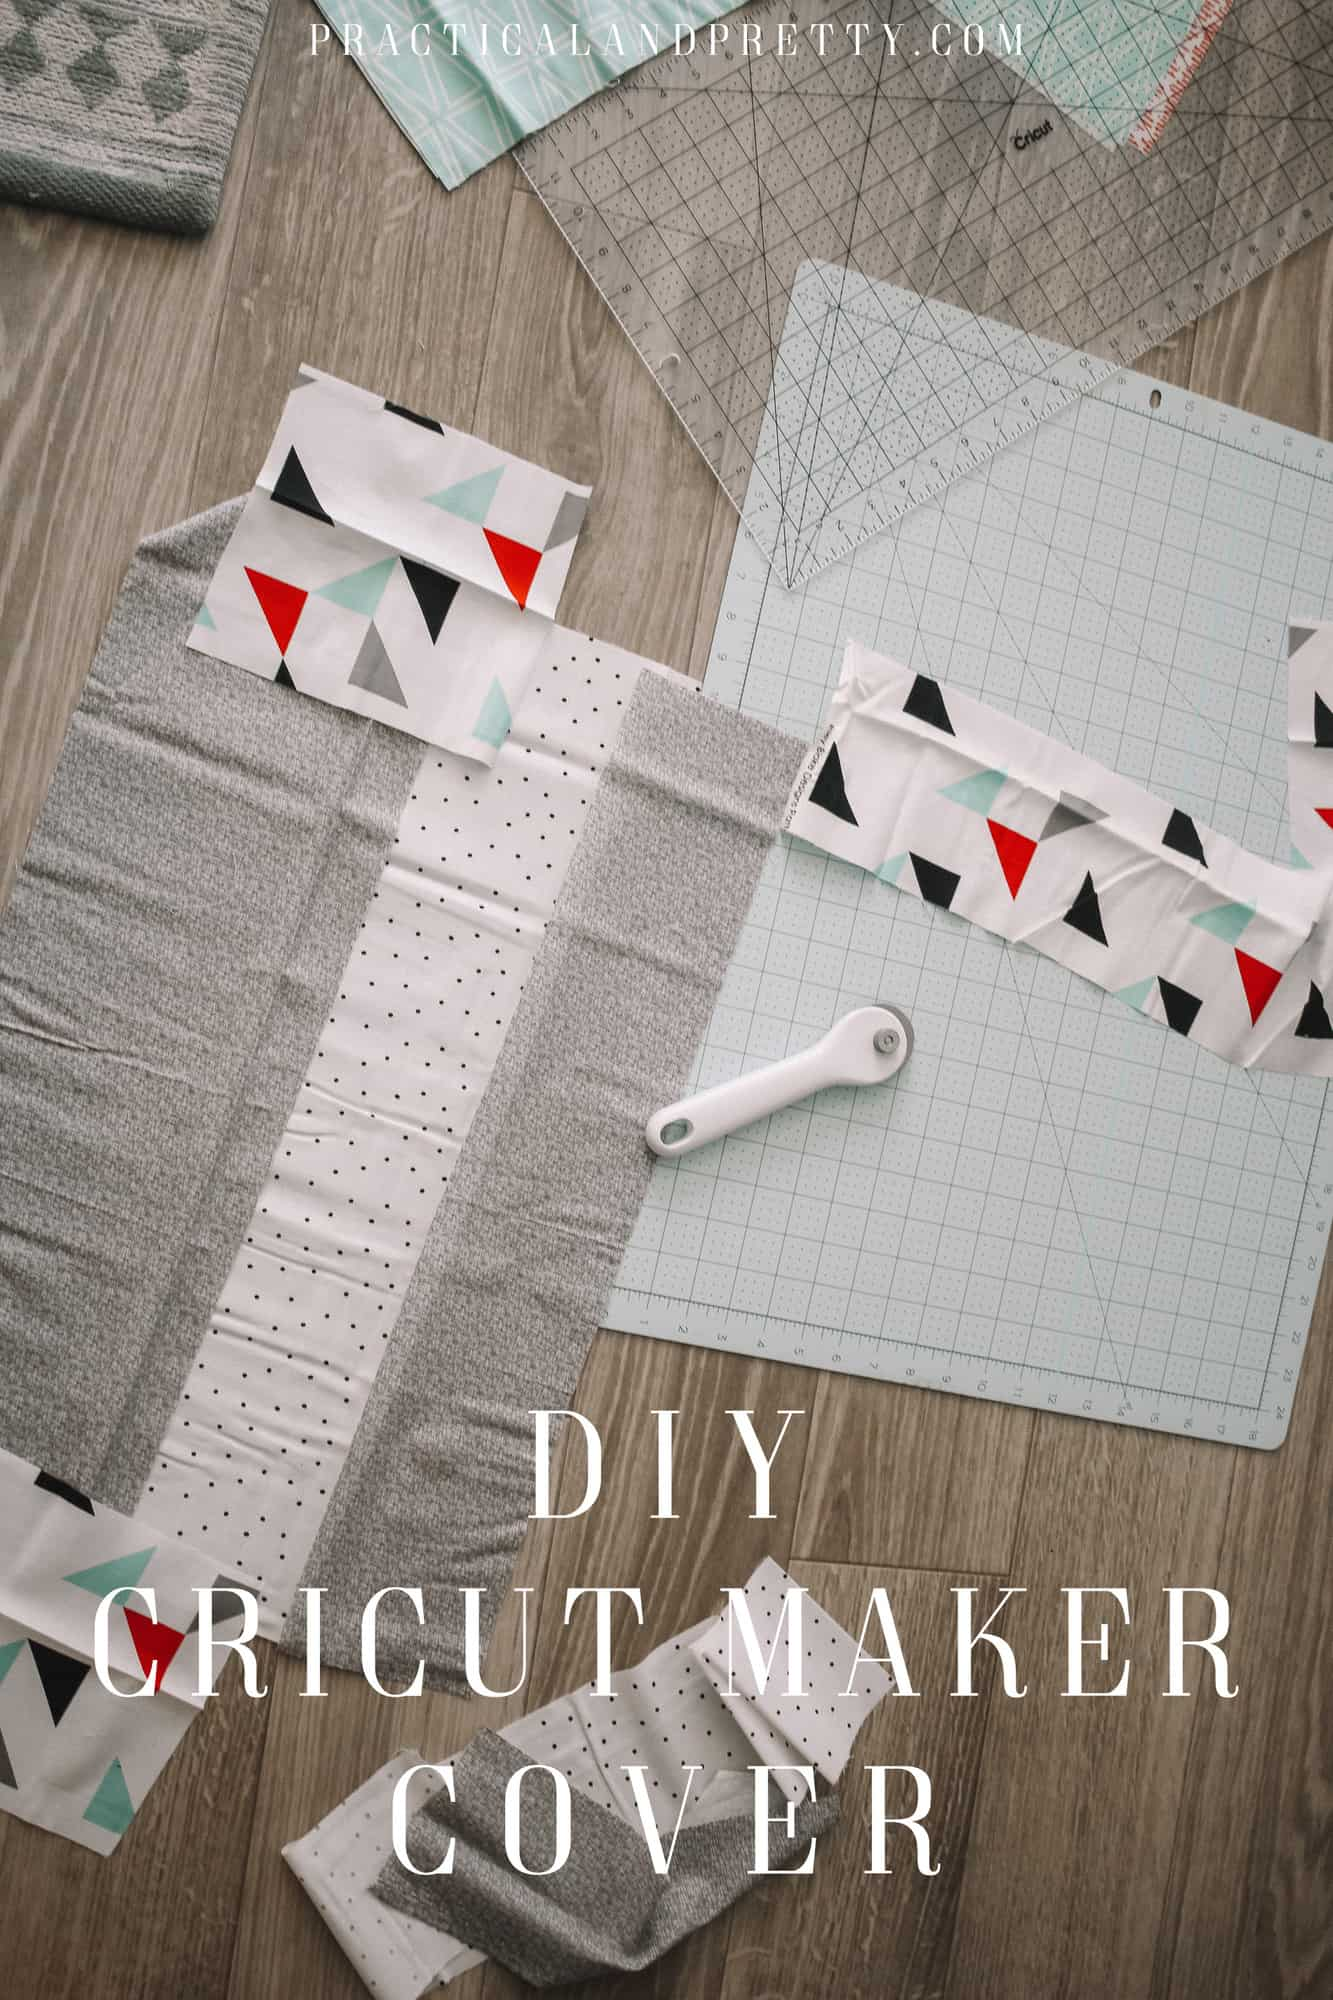 It is really simple easy to create this cover for your Cricut machine and you don't need many materials to complete the project!